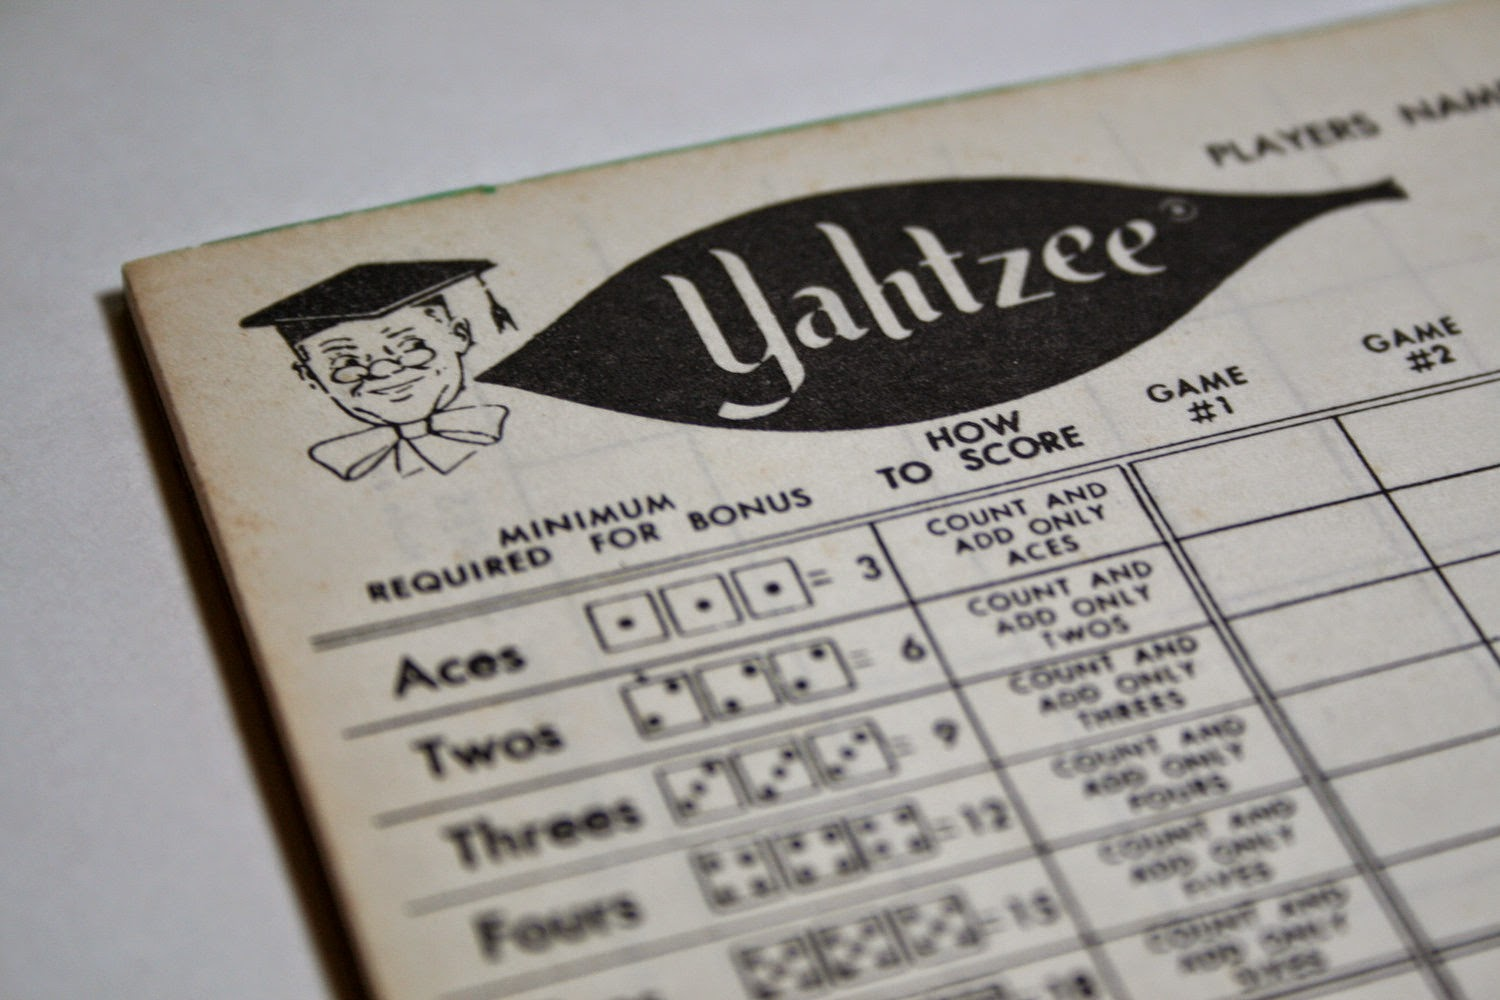 picture about Yahtzee Sheets Printable referred to as Yahtzee On-line: Printable Yahtzee Ranking Sheet